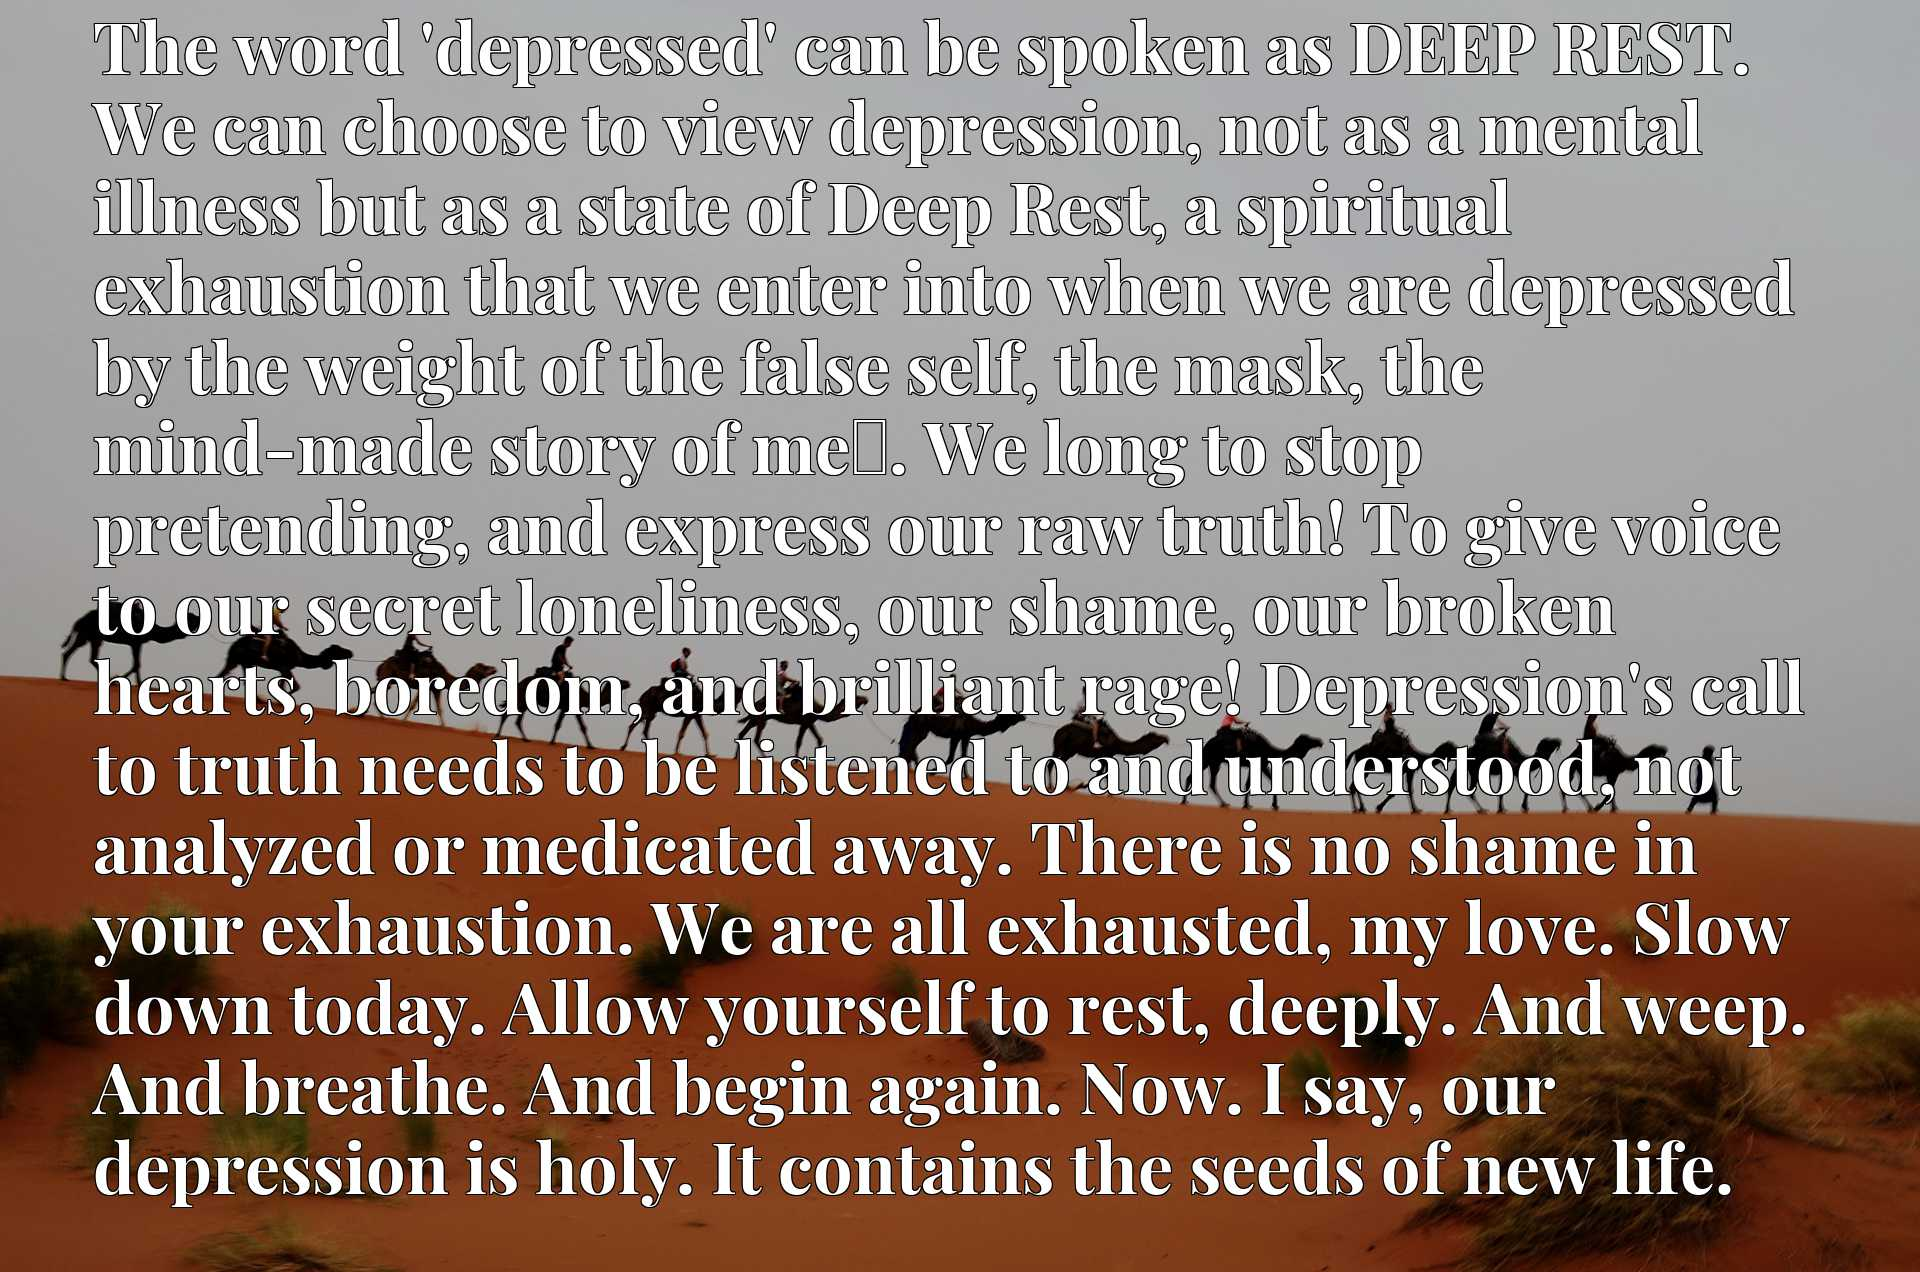 The word 'depressed' can be spoken as DEEP REST. We can choose to view depression, not as a mental illness but as a state of Deep Rest, a spiritual exhaustion that we enter into when we are depressed  by the weight of the false self, the mask, the mind-made story of mex9d. We long to stop pretending, and express our raw truth! To give voice to our secret loneliness, our shame, our broken hearts, boredom, and brilliant rage! Depression's call to truth needs to be listened to and understood, not analyzed or medicated away. There is no shame in your exhaustion. We are all exhausted, my love. Slow down today. Allow yourself to rest, deeply. And weep. And breathe. And begin again. Now. I say, our depression is holy. It contains the seeds of new life.